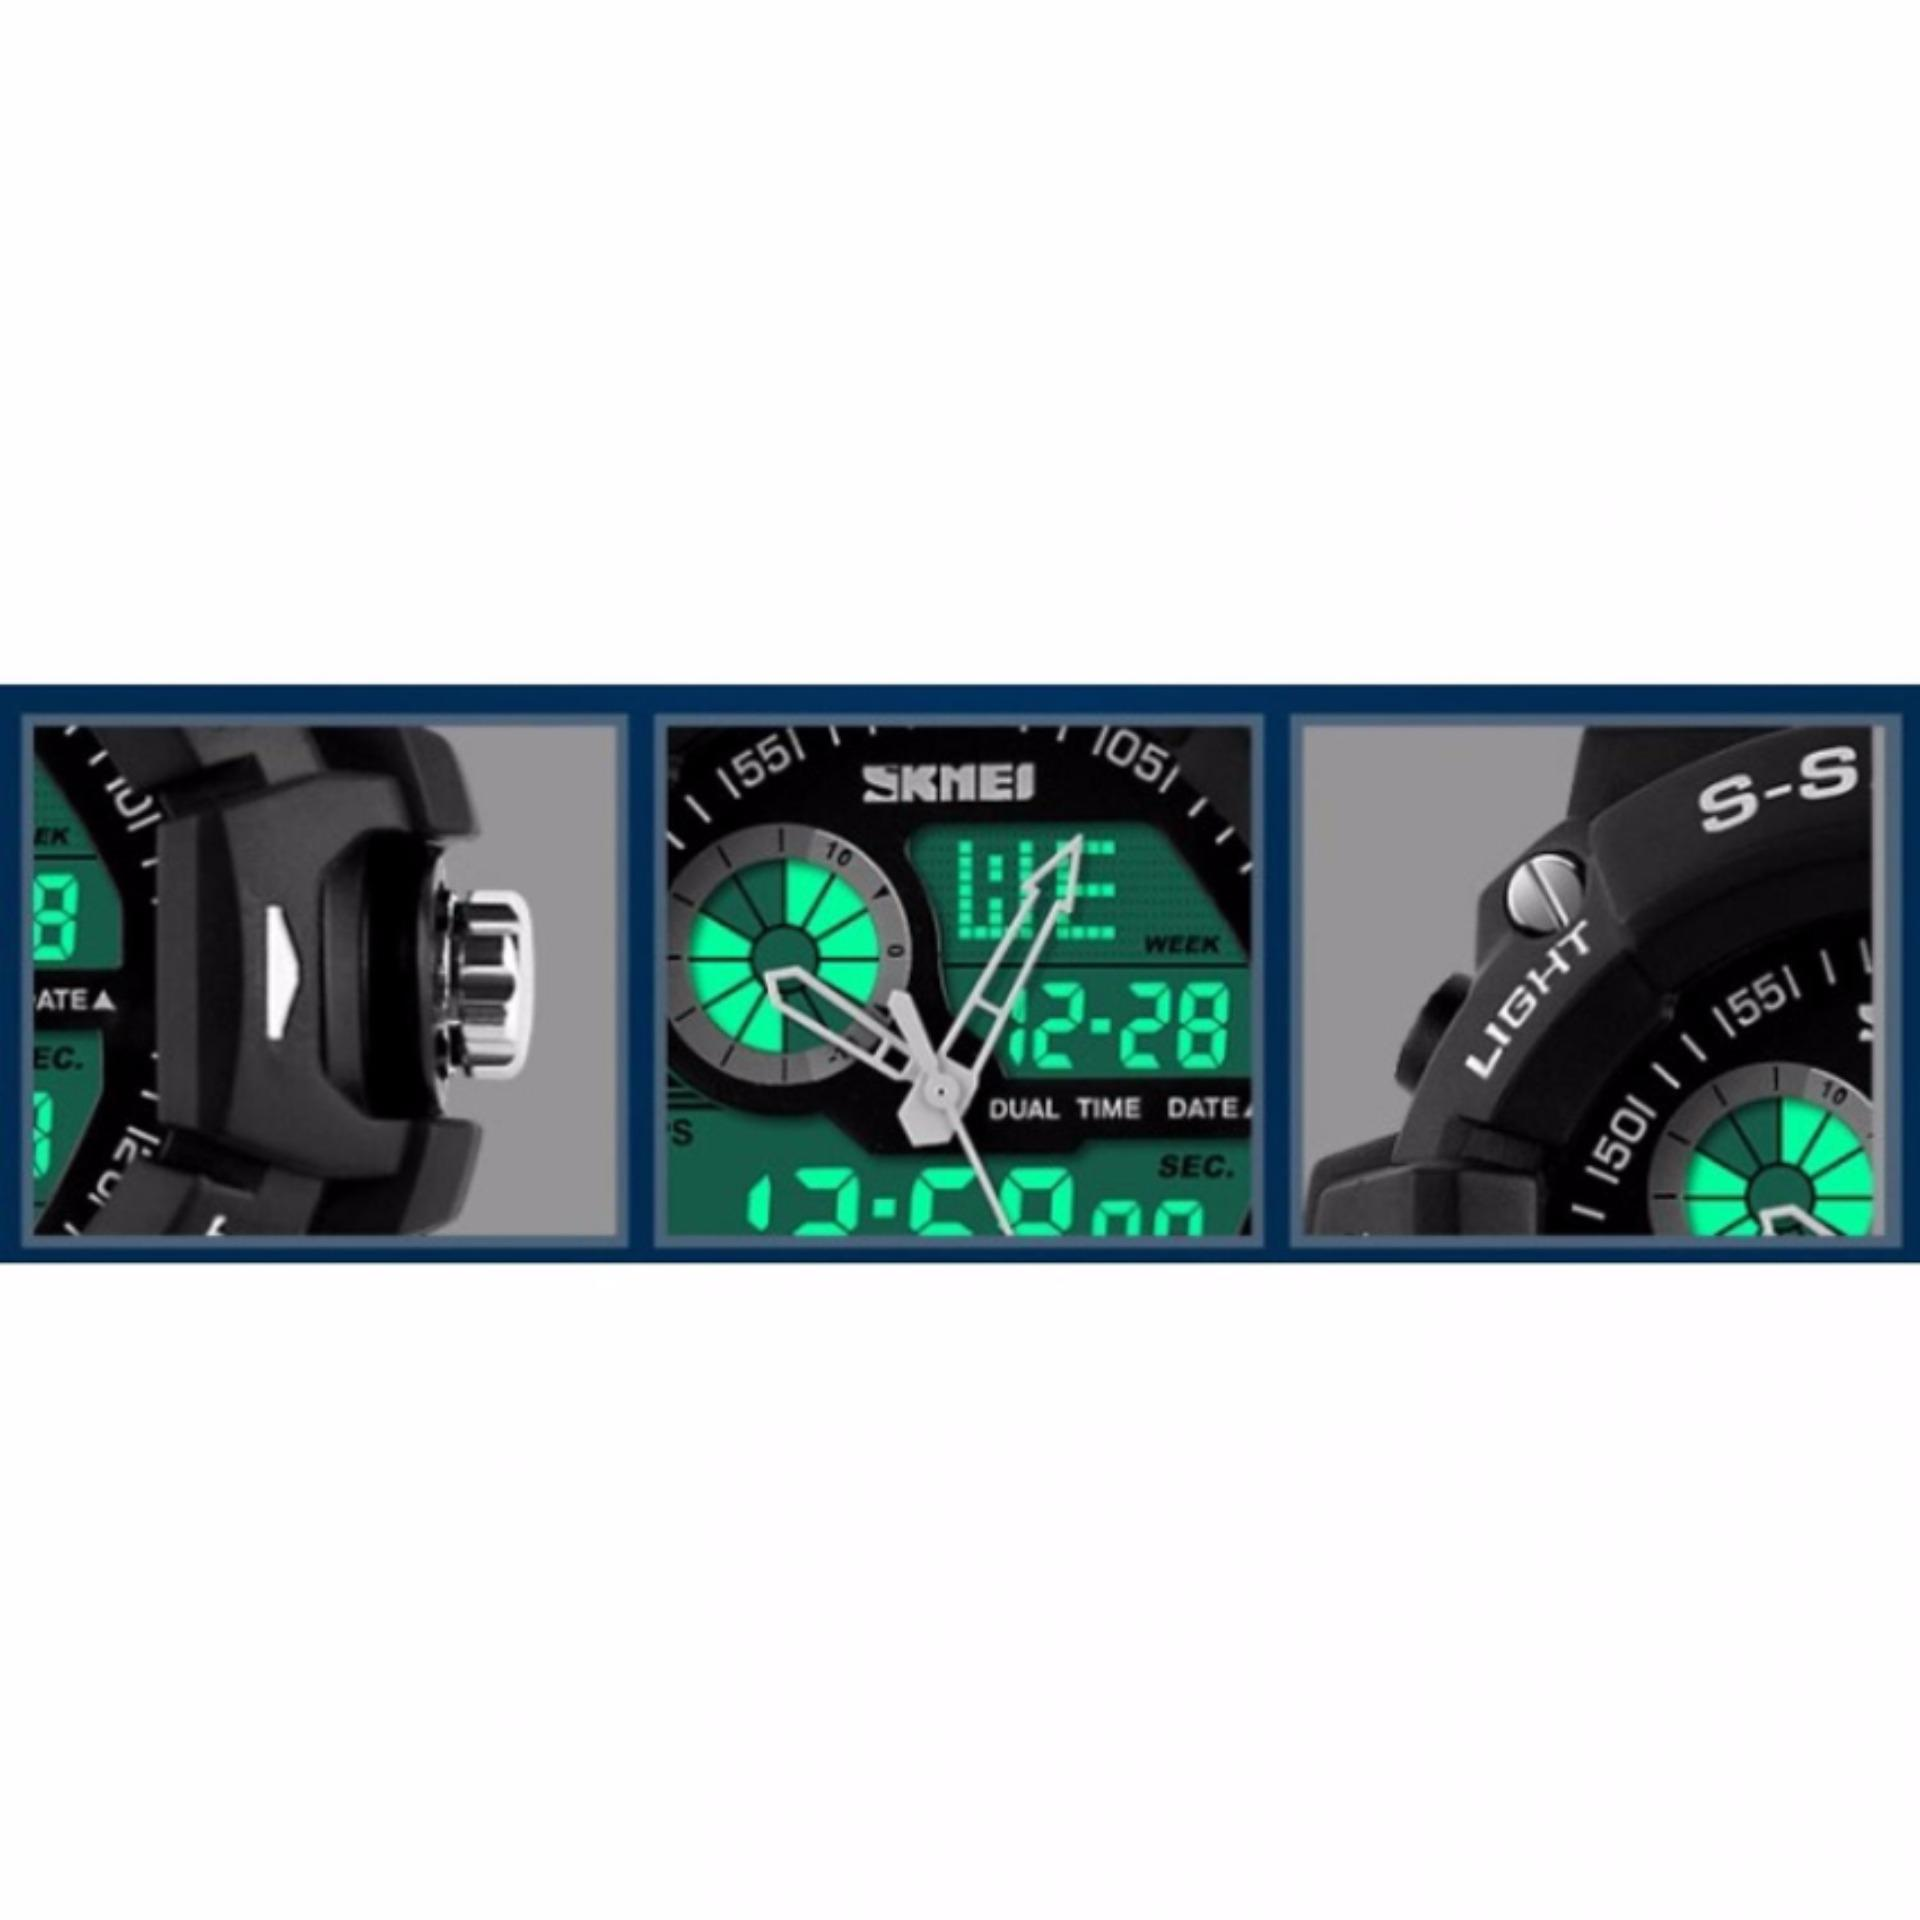 SKMEI Casio Dual Time Men Sport LED Watch Anti Air Water Resistant WR 50m AD1029 Jam